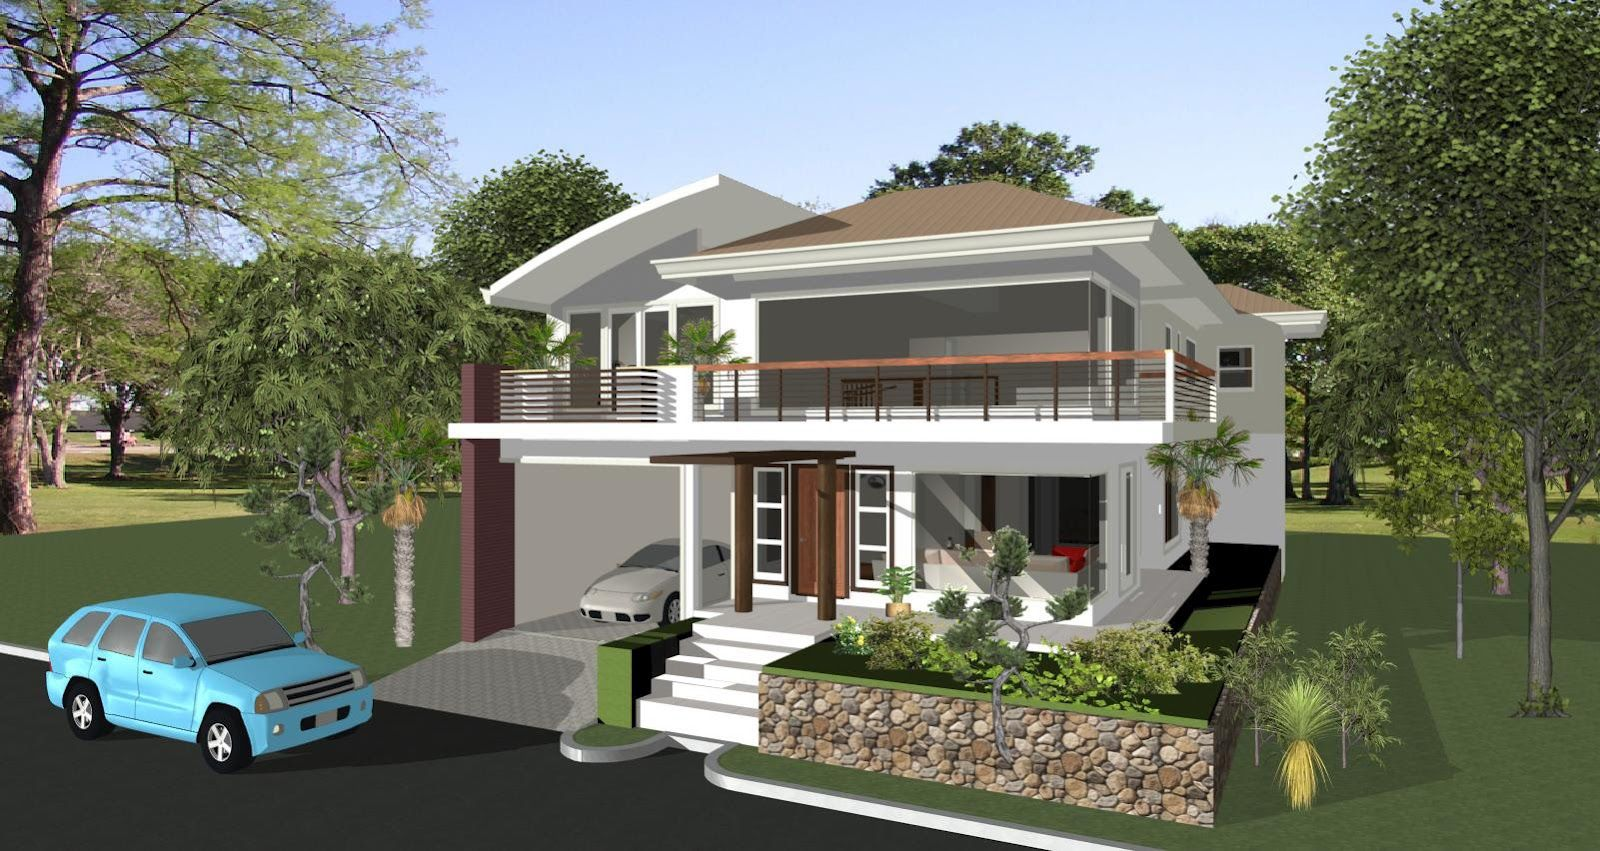 Dream home designs erecre group realty design and Architectural house plan styles